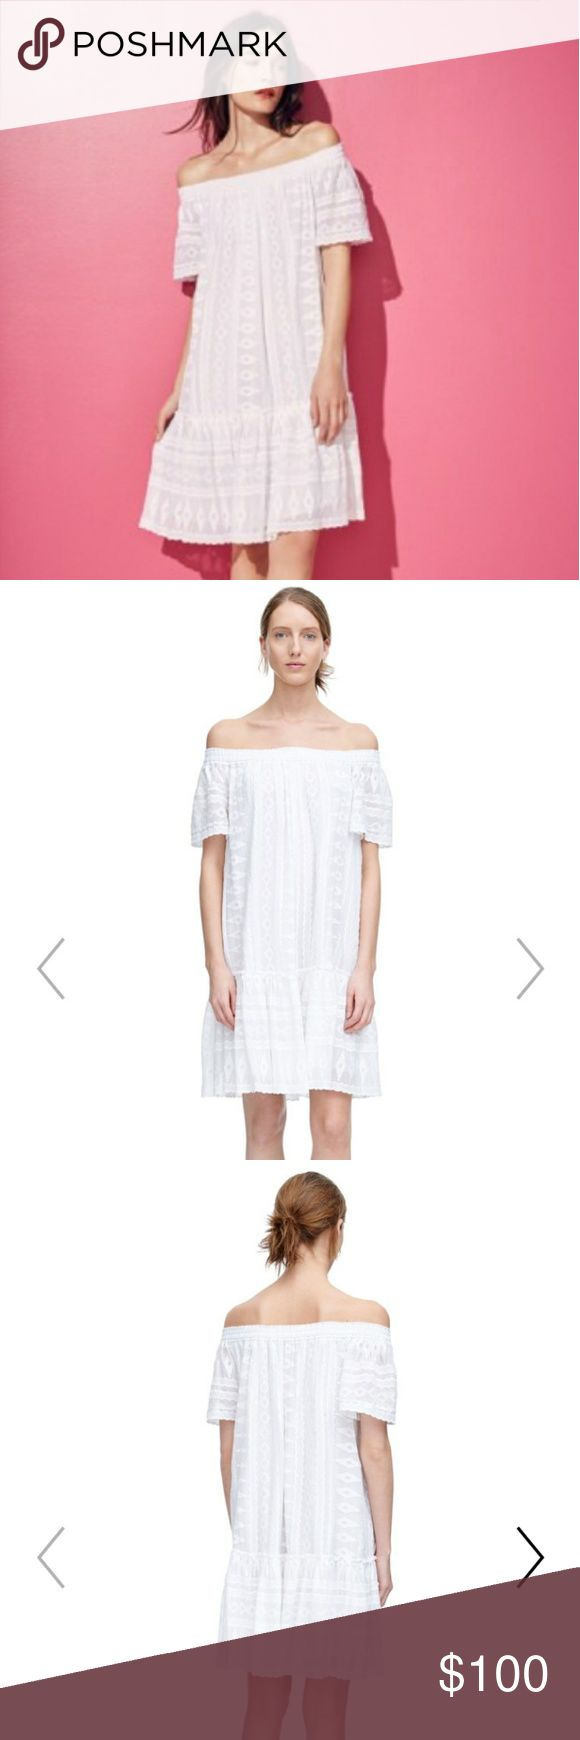 Rebecca Taylor Dress Lovely Rebecca Taylor white off the shoulder embroidered Rebecca Taylor dress 100% cotton New without tags - never worn Rebecca Taylor Dresses Midi